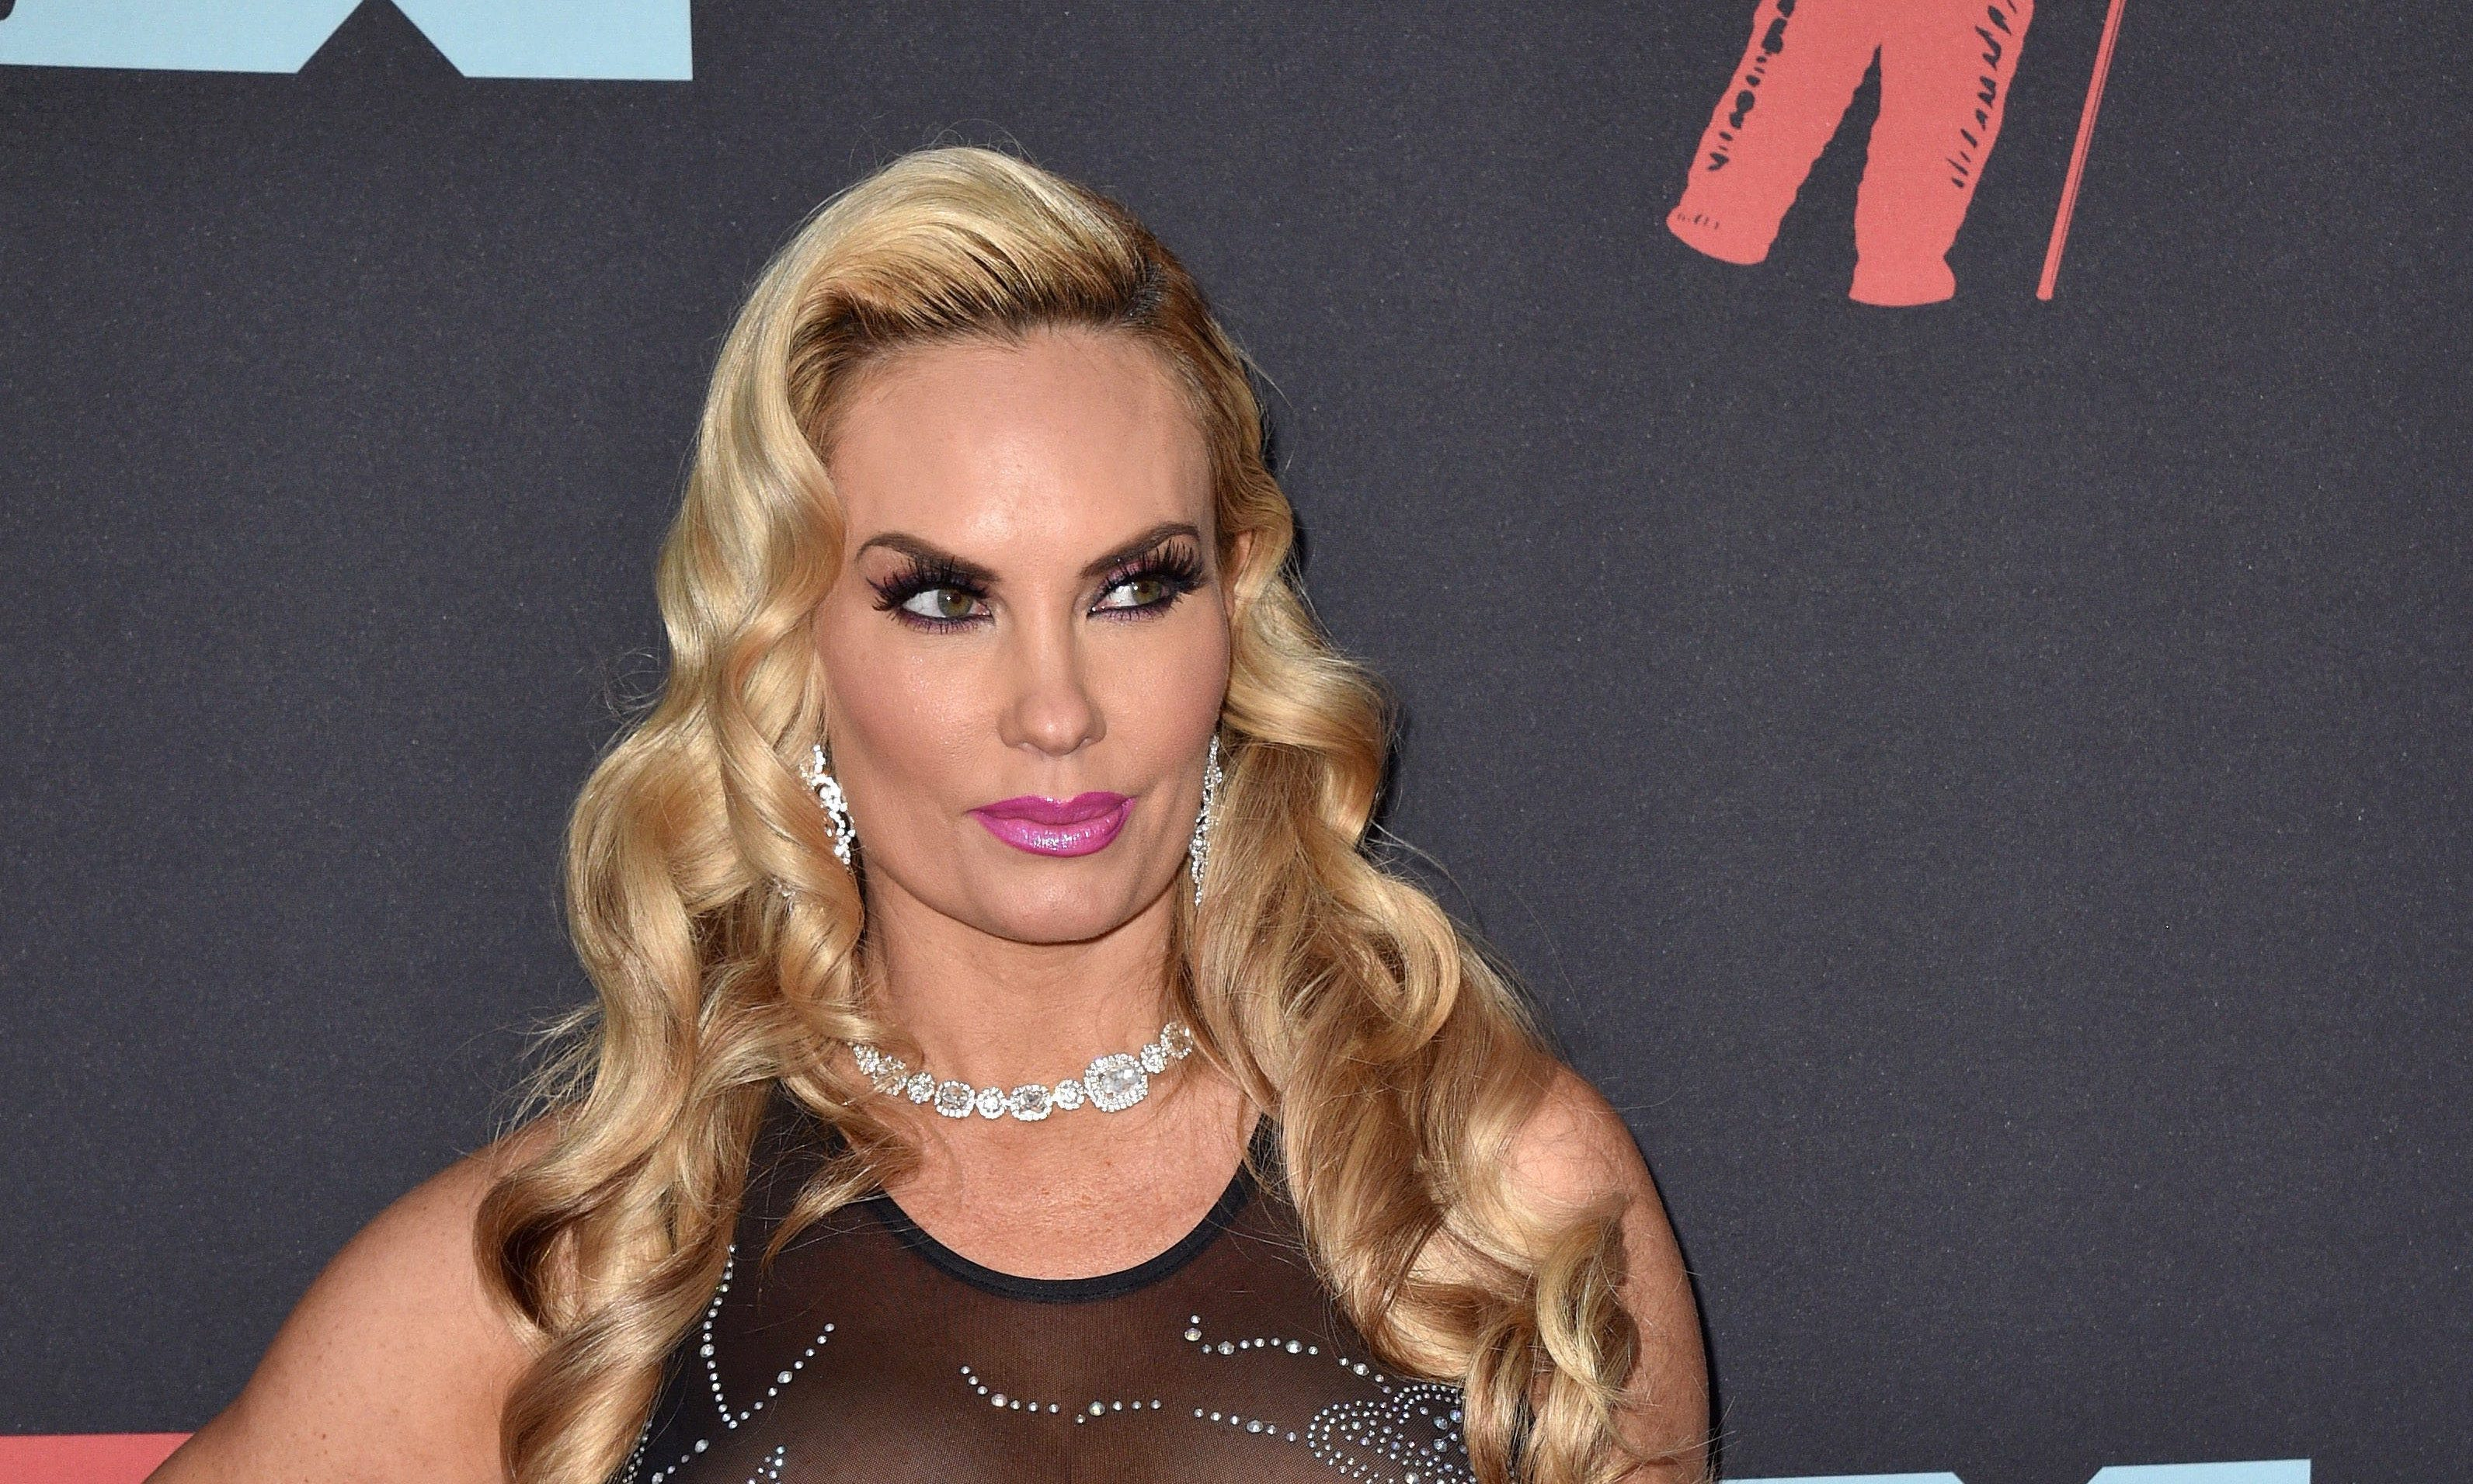 Coco Austin Says Her 'Family Is Falling Apart' As Her Father Battles COVID-19